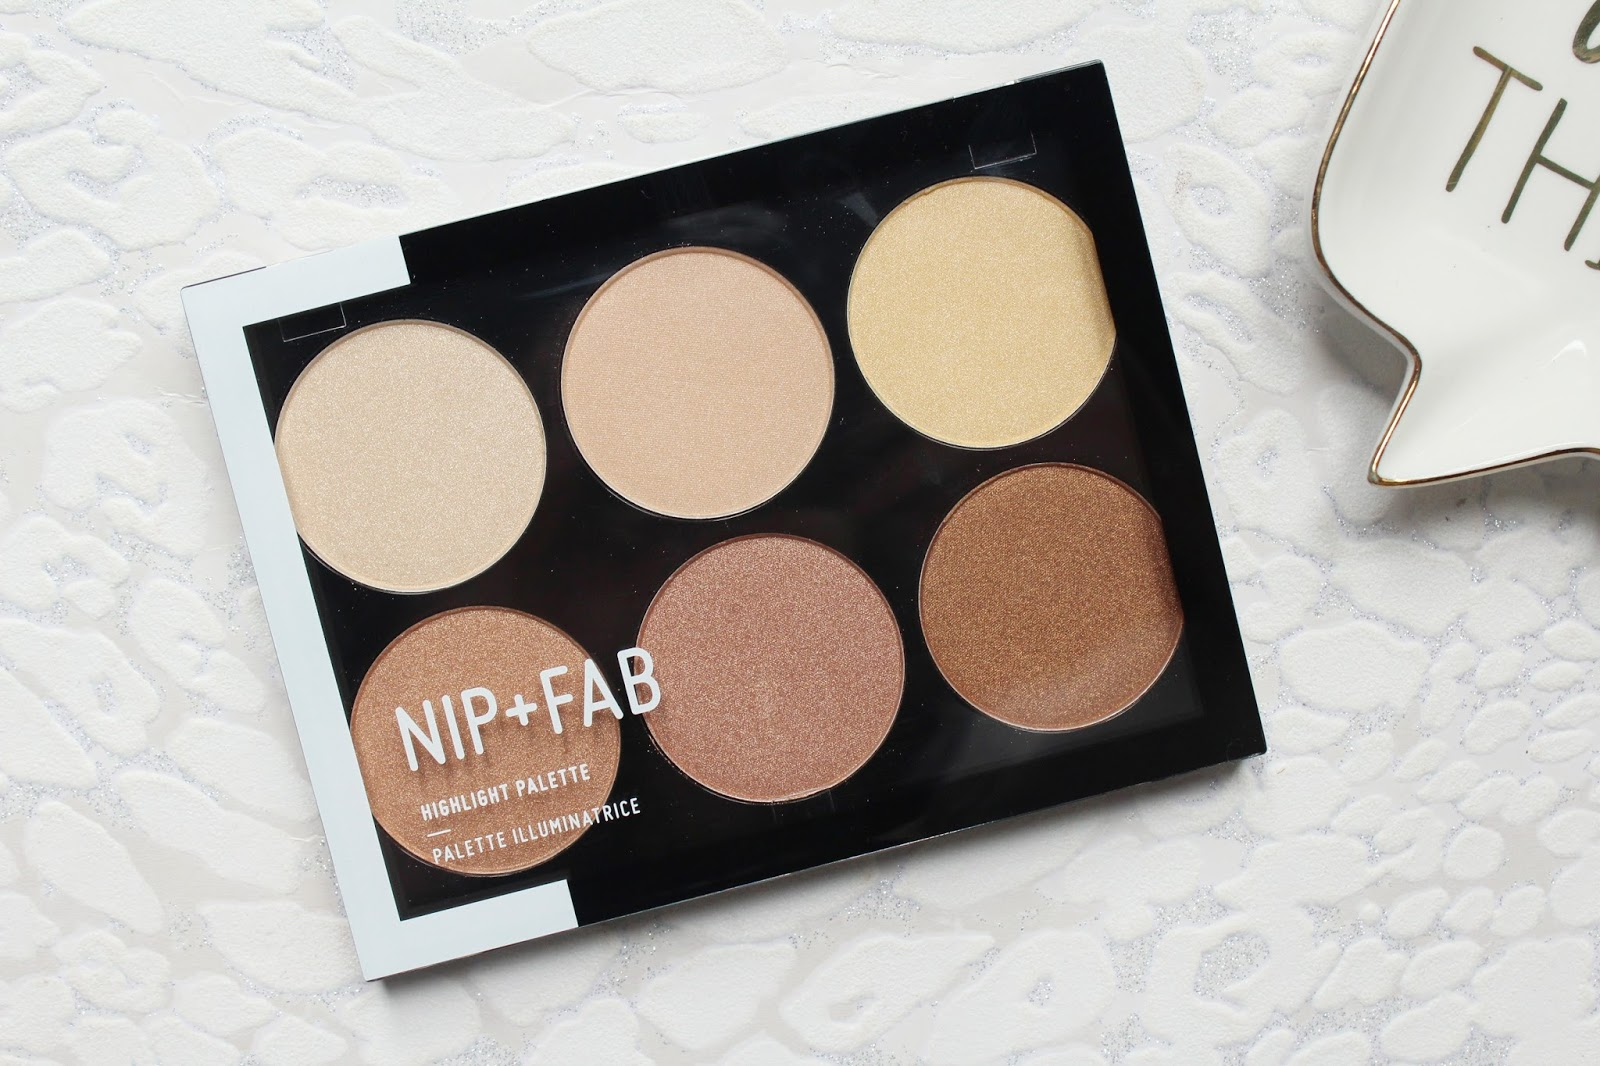 Nip+Fab Highlighting Palette